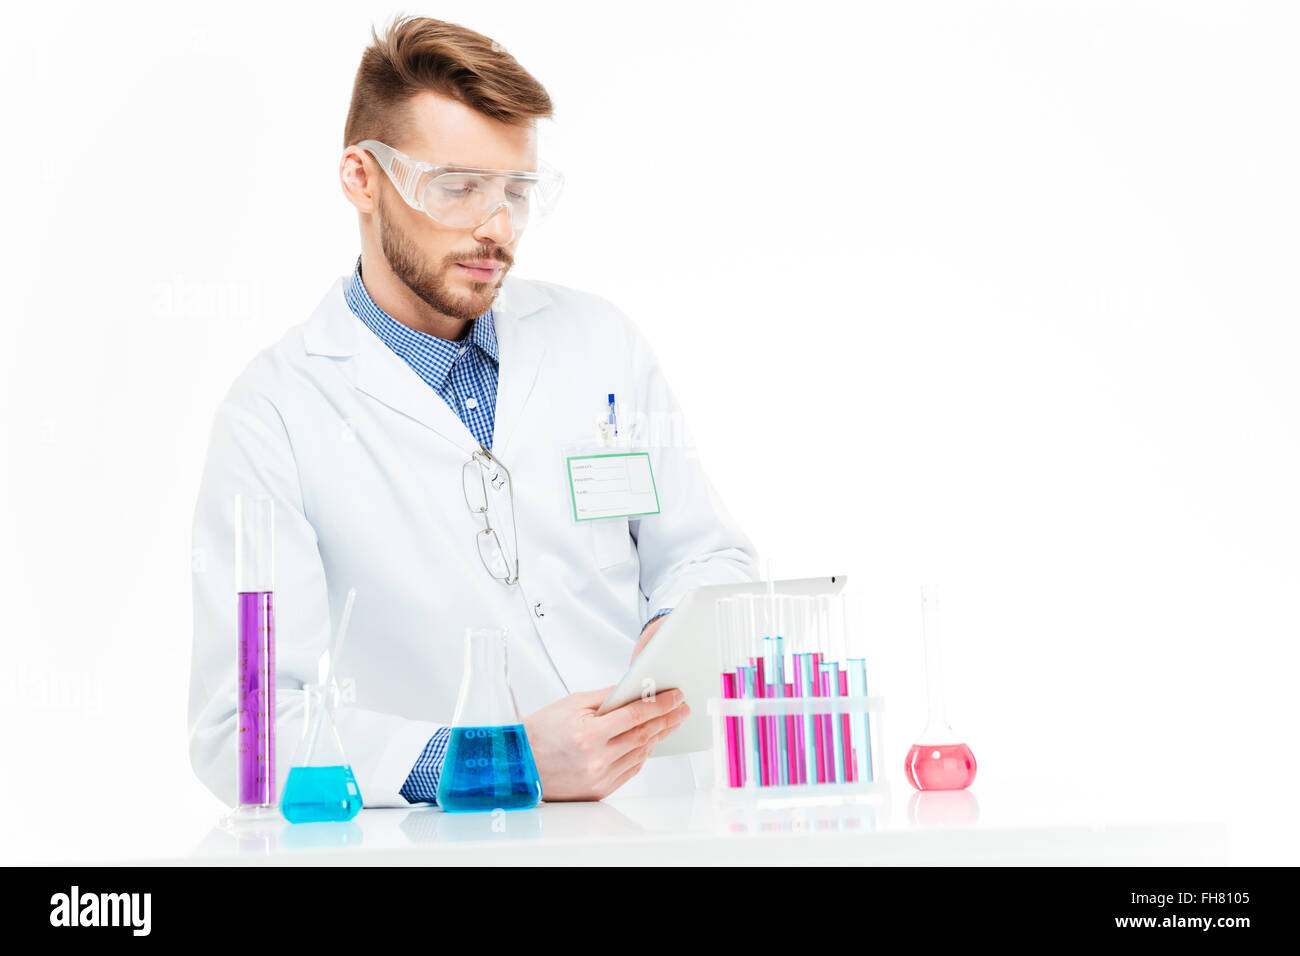 Chemist using tablet computer in laboratory - Stock Image